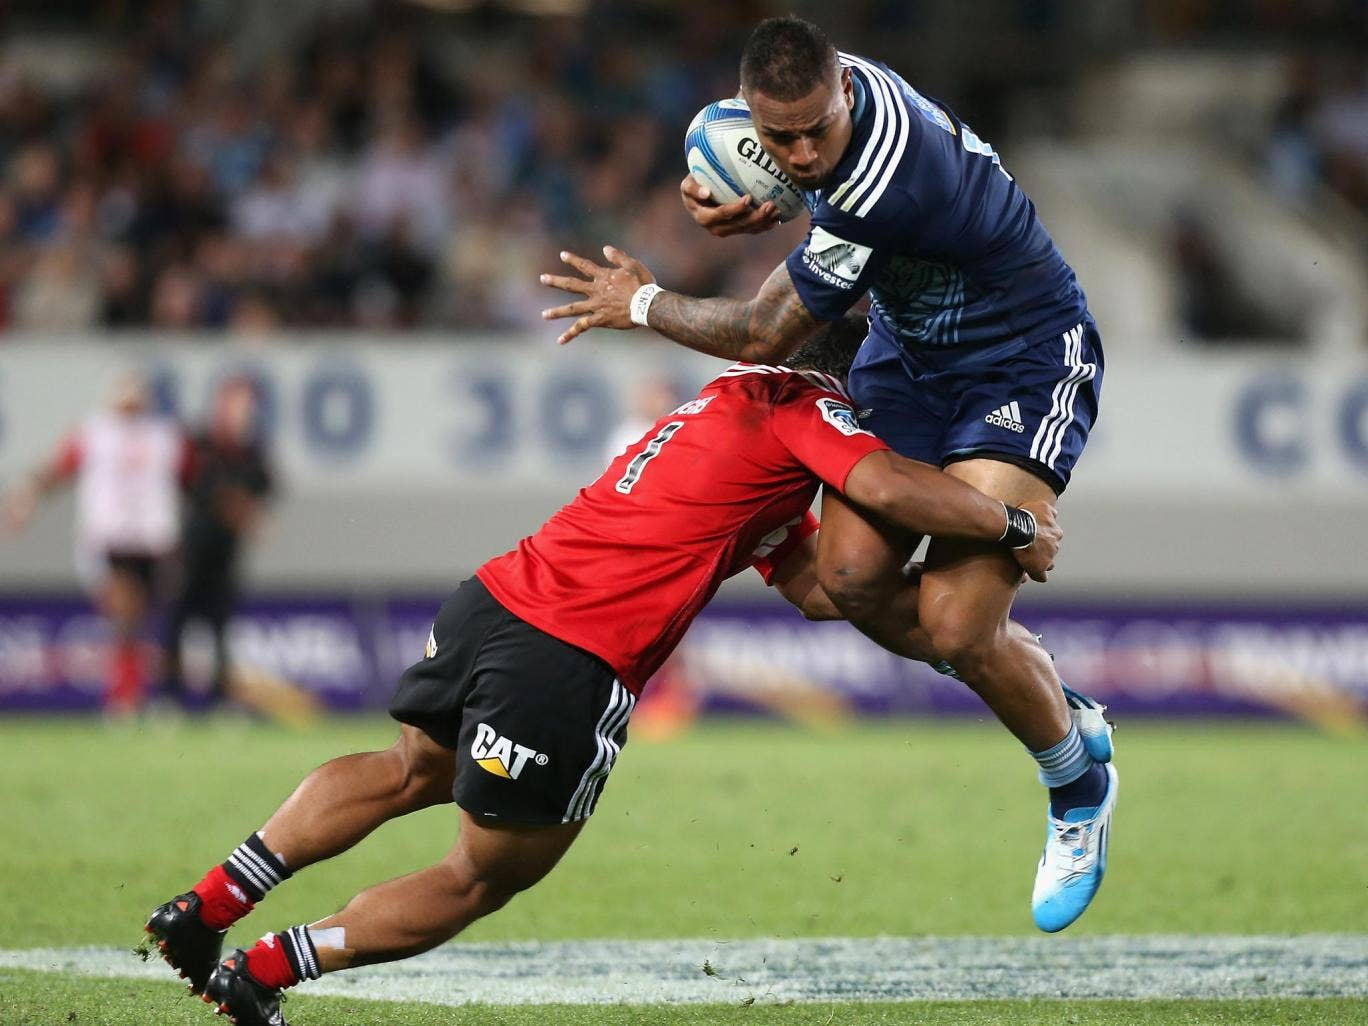 Frank Halai of the Auckland Blues got on the scoresheet in the victory over the Crusaders